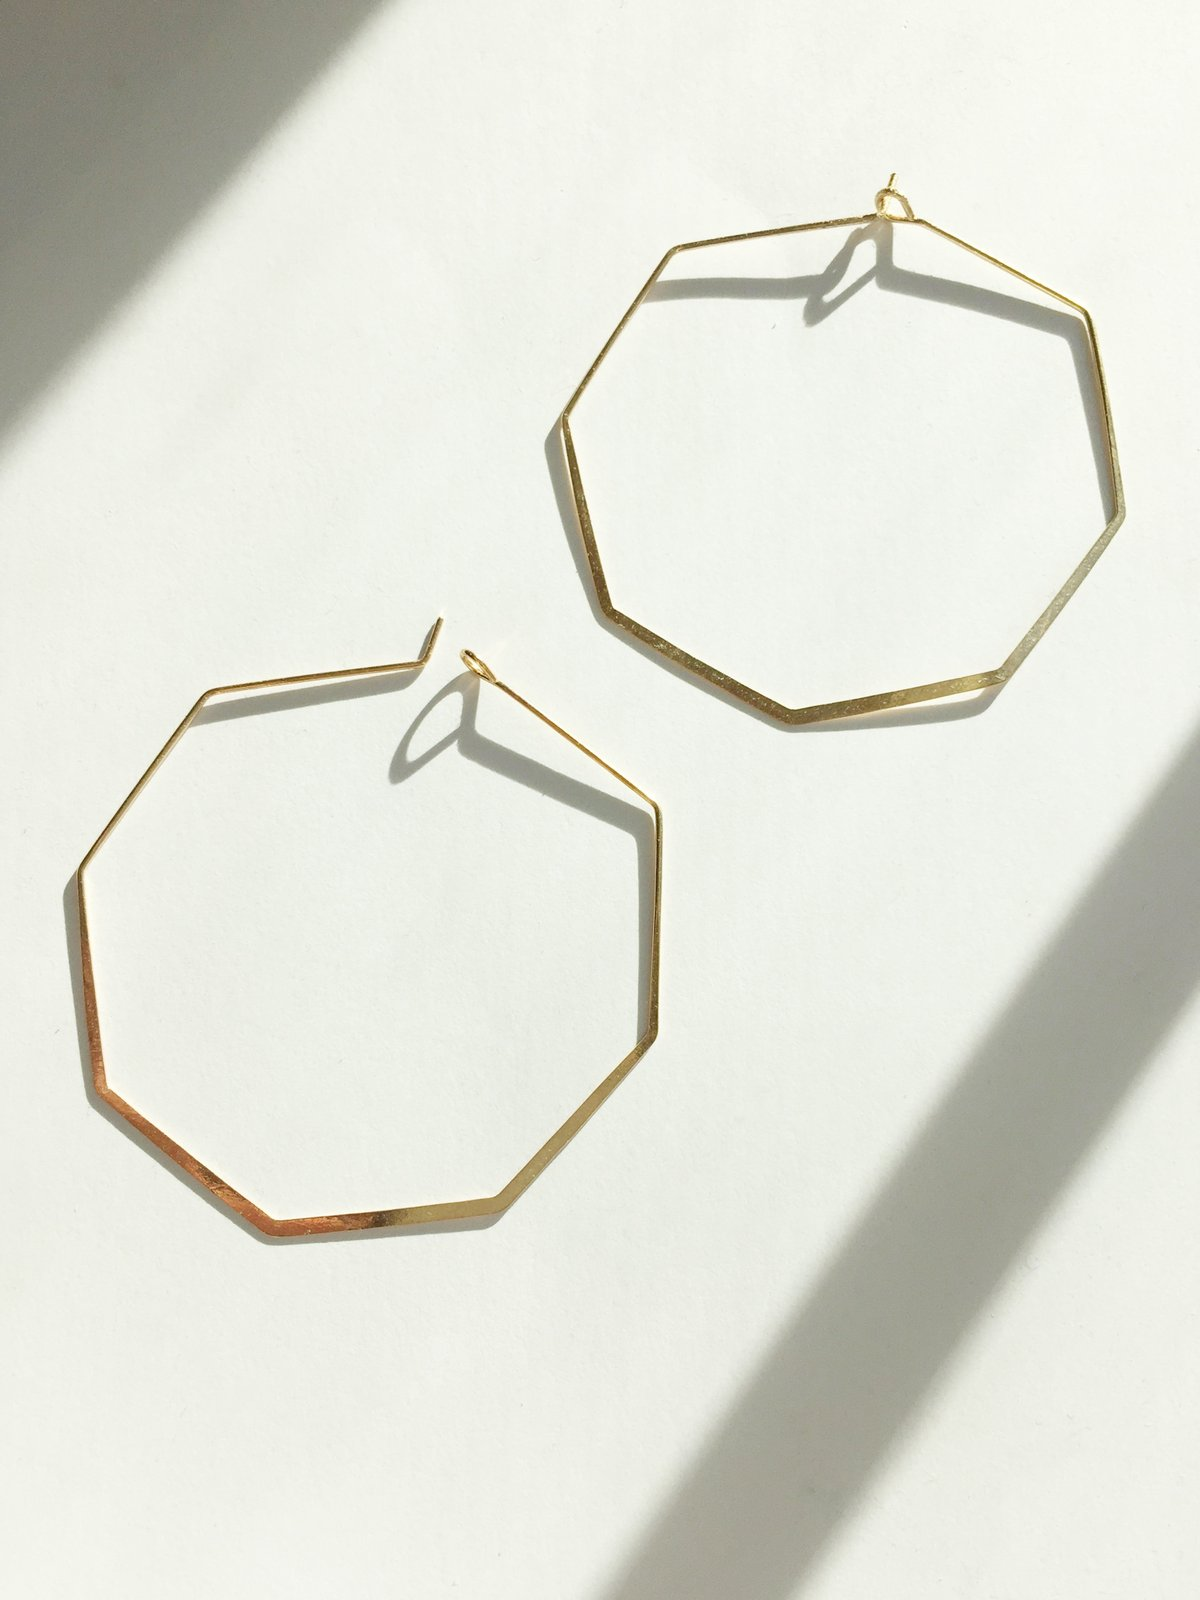 gold wire hoop earrings octagon shape  by Janna Conner